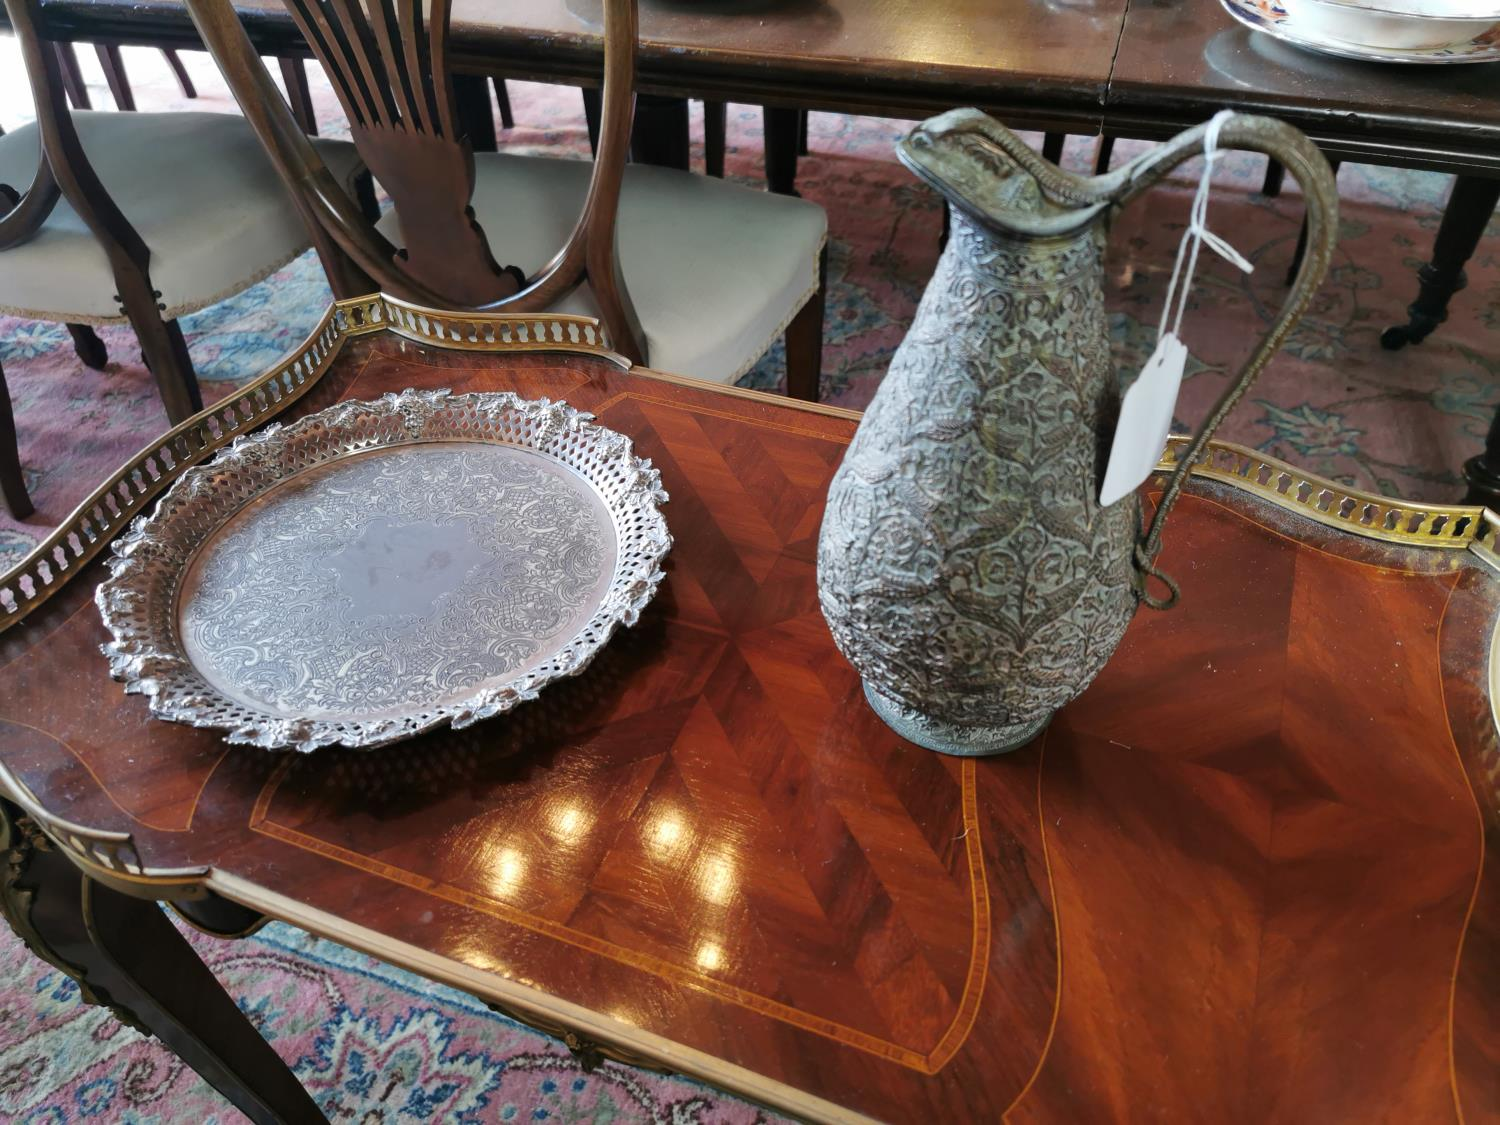 Copper water jug and silverplate tray.